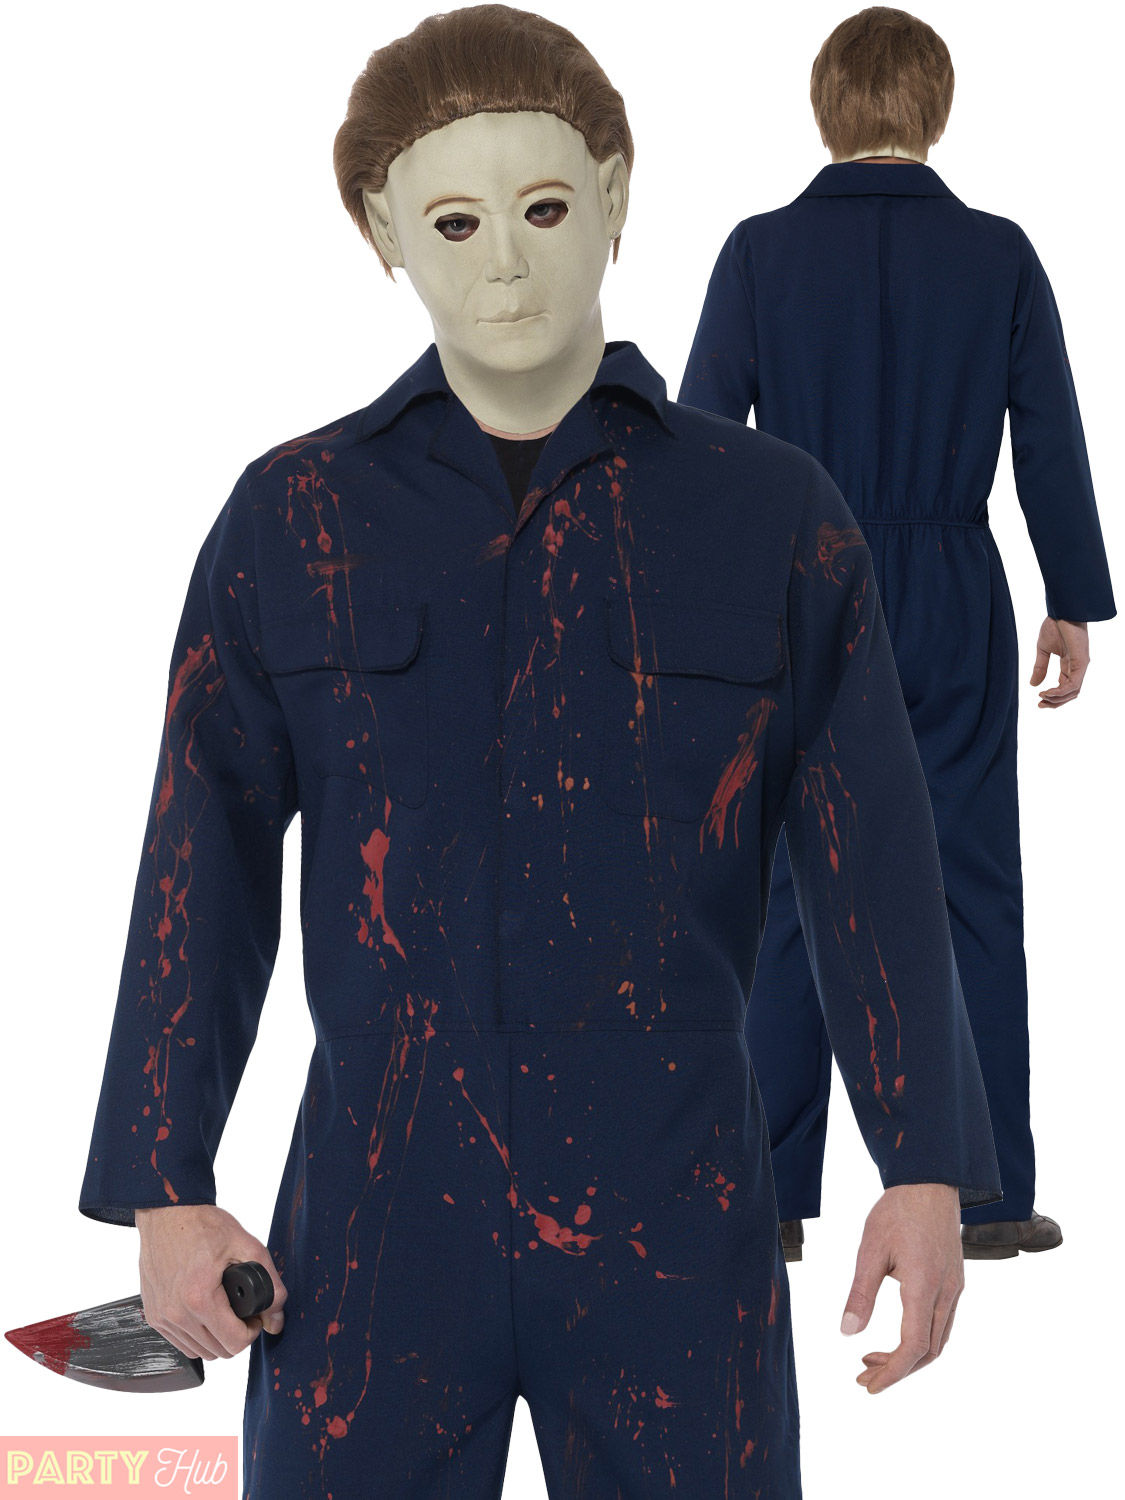 mens michael myers costume adults halloween fancy dress horror film movie outfit picture 2 of 3